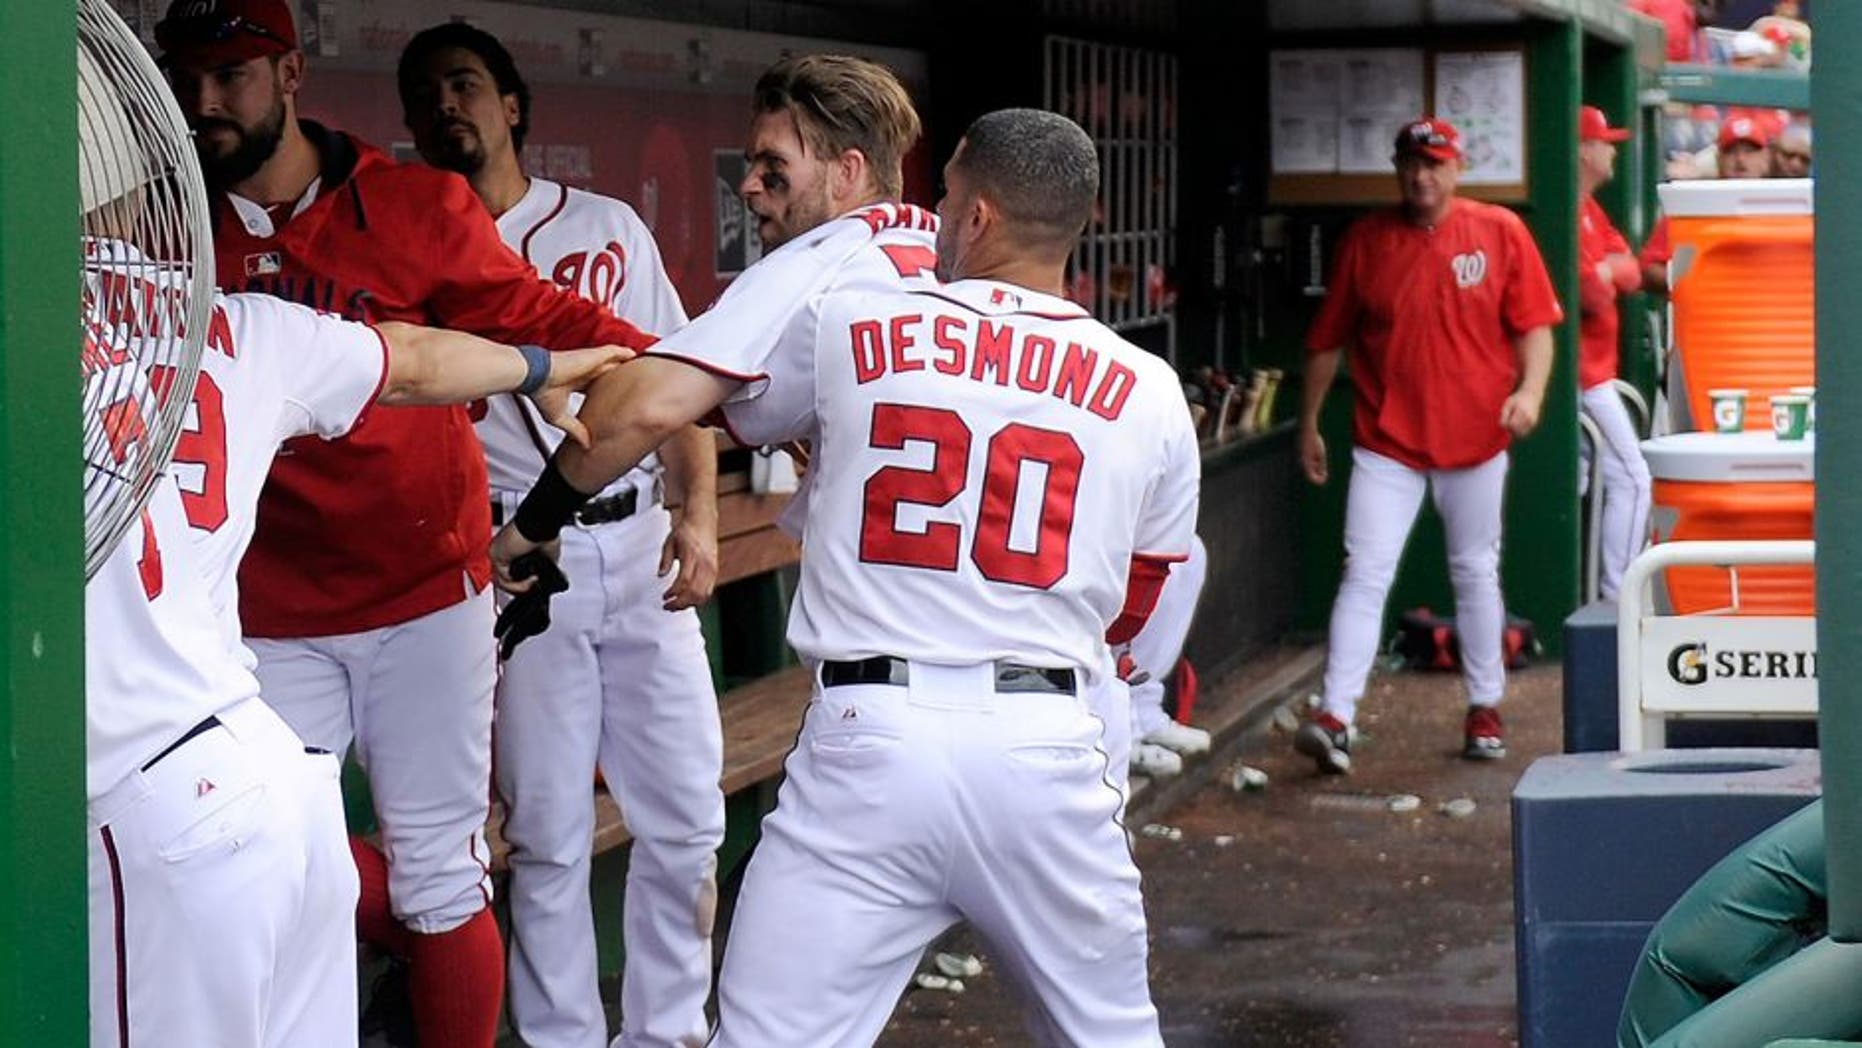 WASHINGTON, DC - SEPTEMBER 27: Bryce Harper #34 of the Washington Nationals is pulled away by Ian Desmond #20 after an altercation with Jonathan Papelbon #58 (not pictured) in the eighth inning against the Philadelphia Phillies at Nationals Park on September 27, 2015 in Washington, DC. (Photo by Greg Fiume/Getty Images)